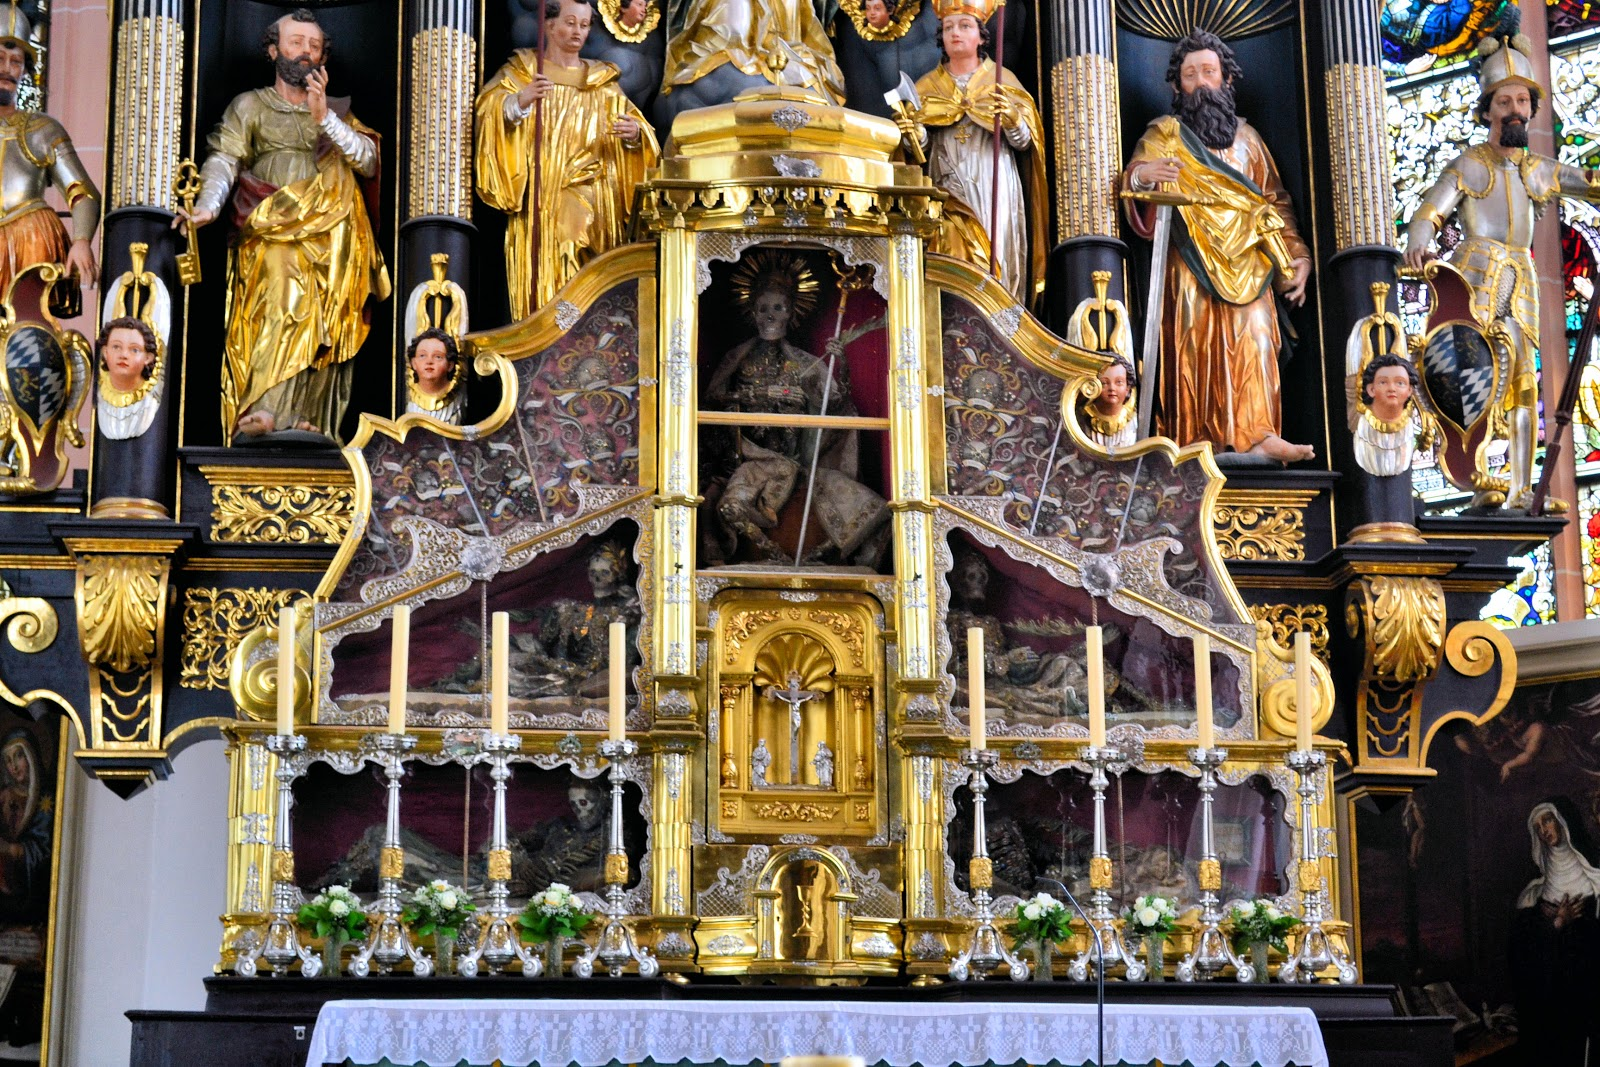 Look closely at the extraordinary collection of relics in the High Altar at Saint Michael's.